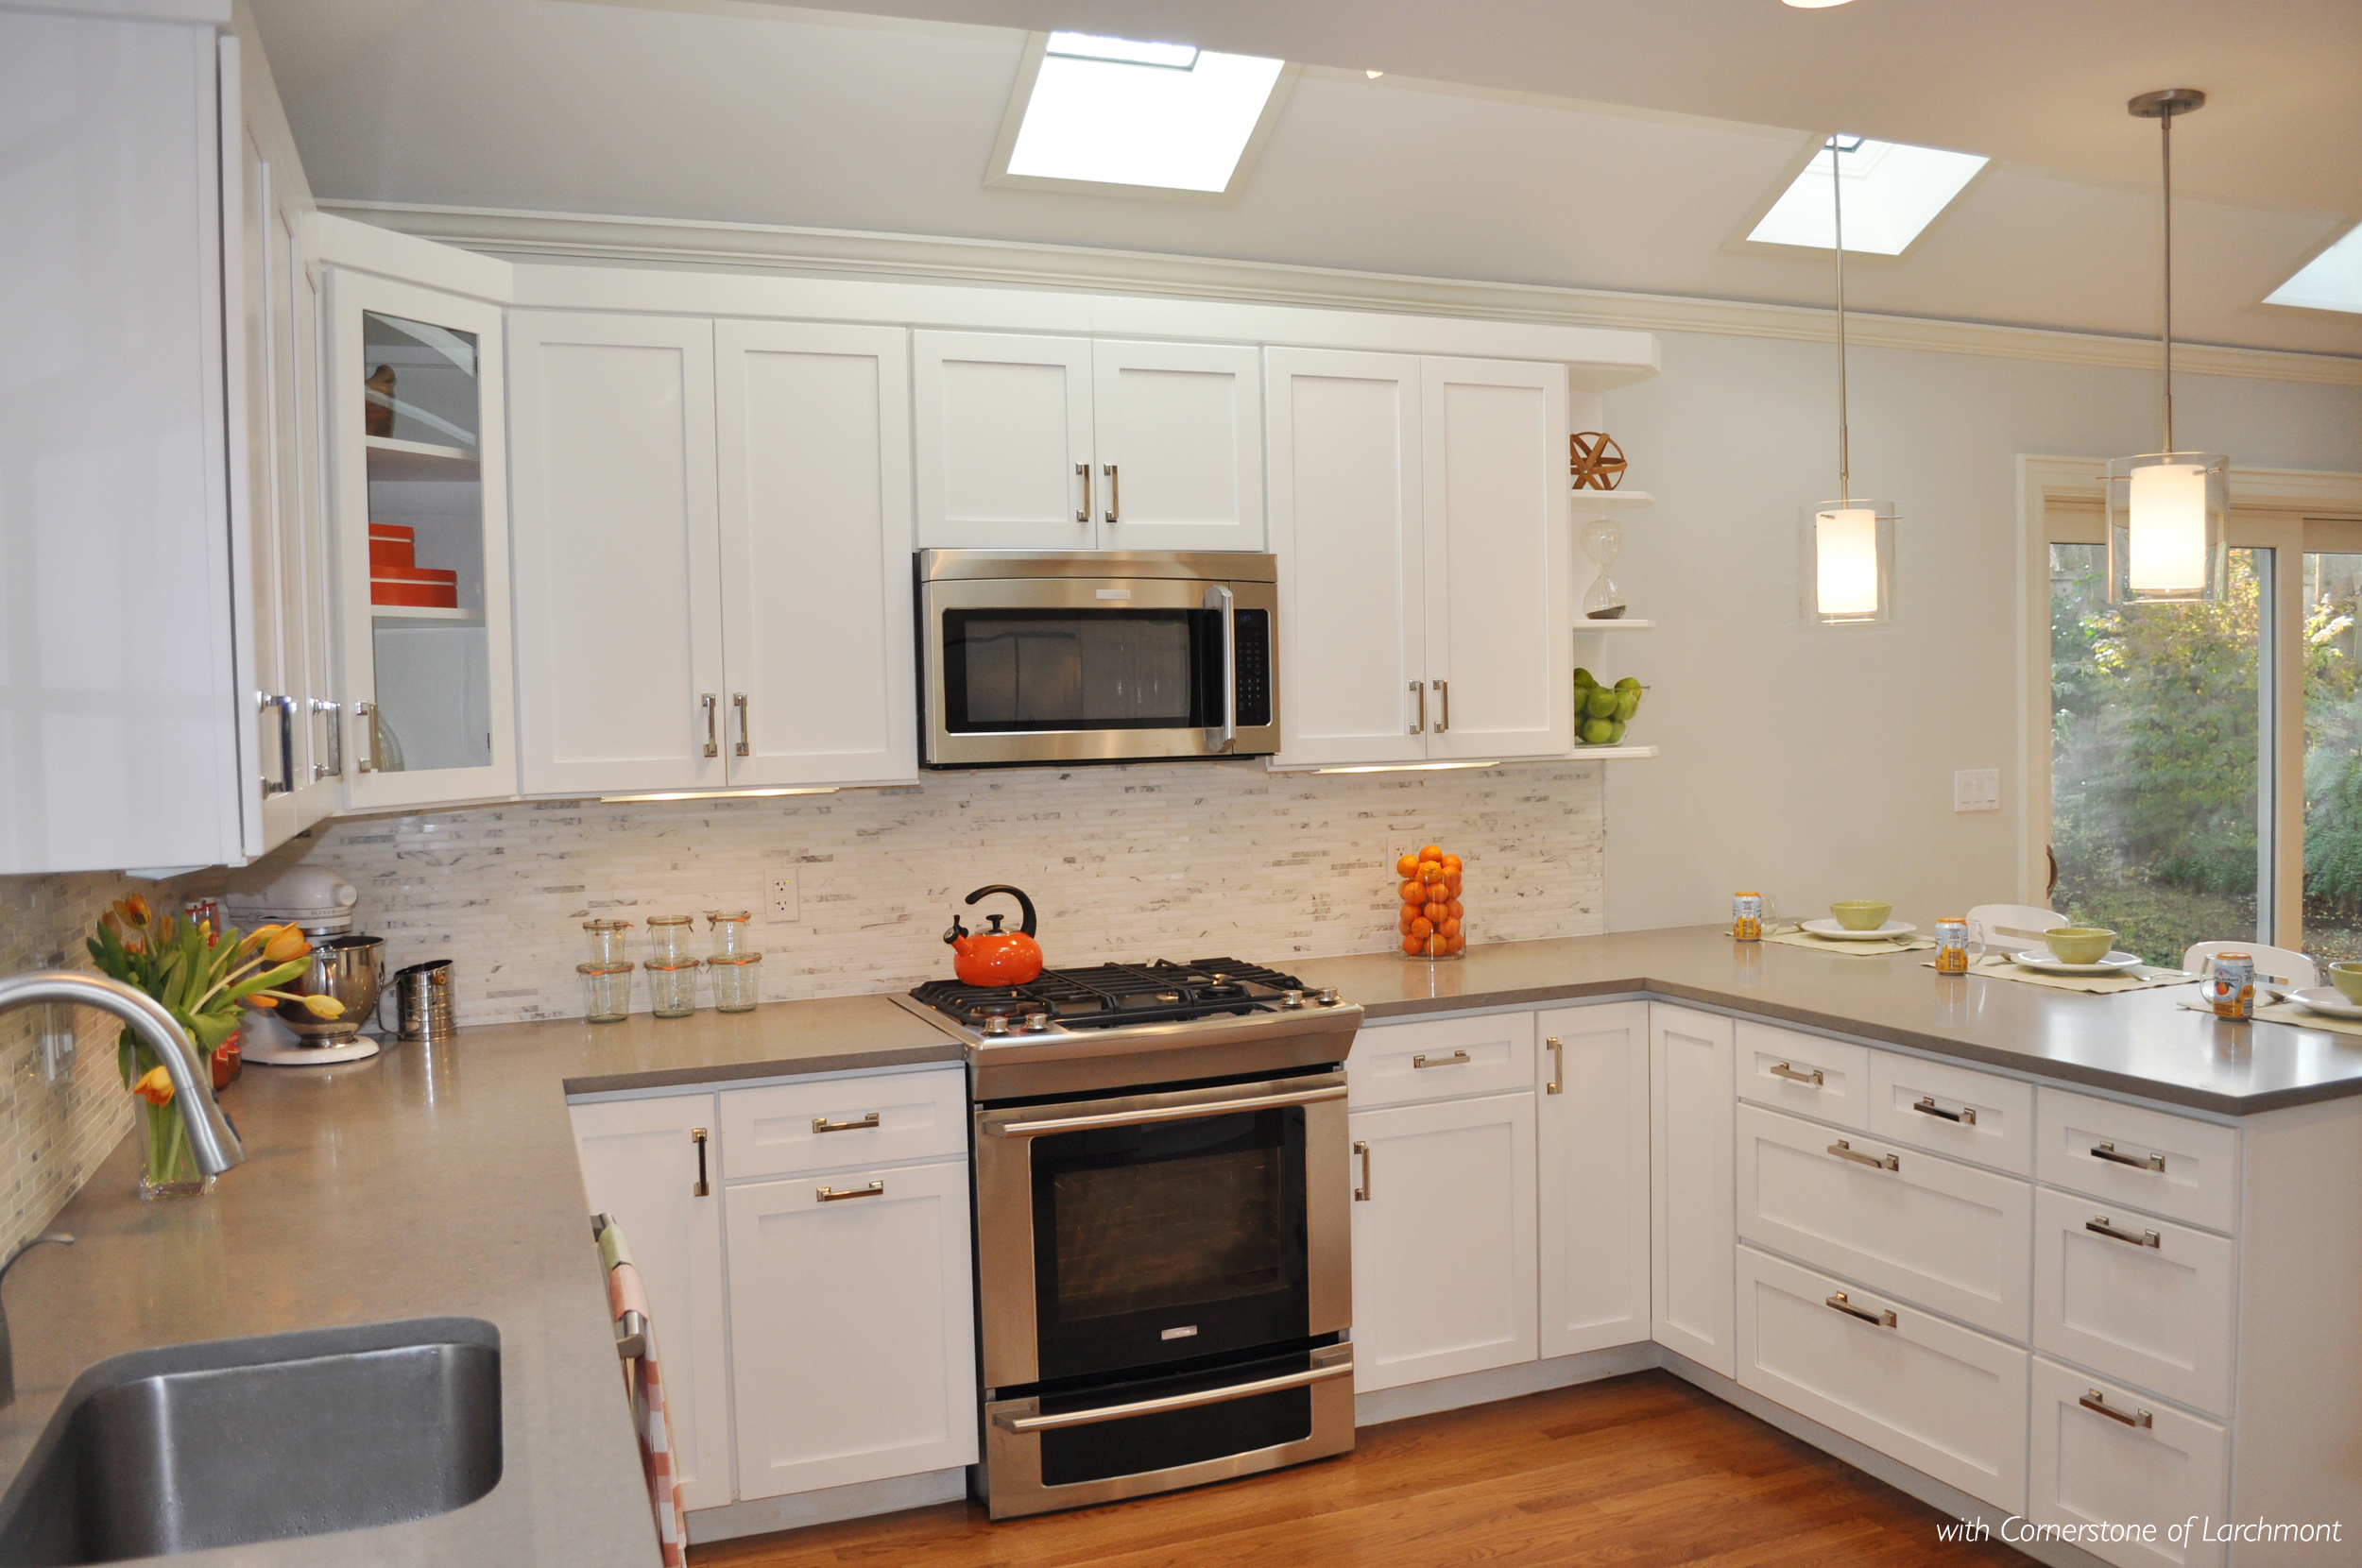 Kim Annick Mitchell_Interior Designer_Kitchen Remodel_White Kitchen Cabinetry_Grey Caesarstone Countertops_Kitchen Glass Clear Pendant Lights_Marble Backsplash Tile.jpg